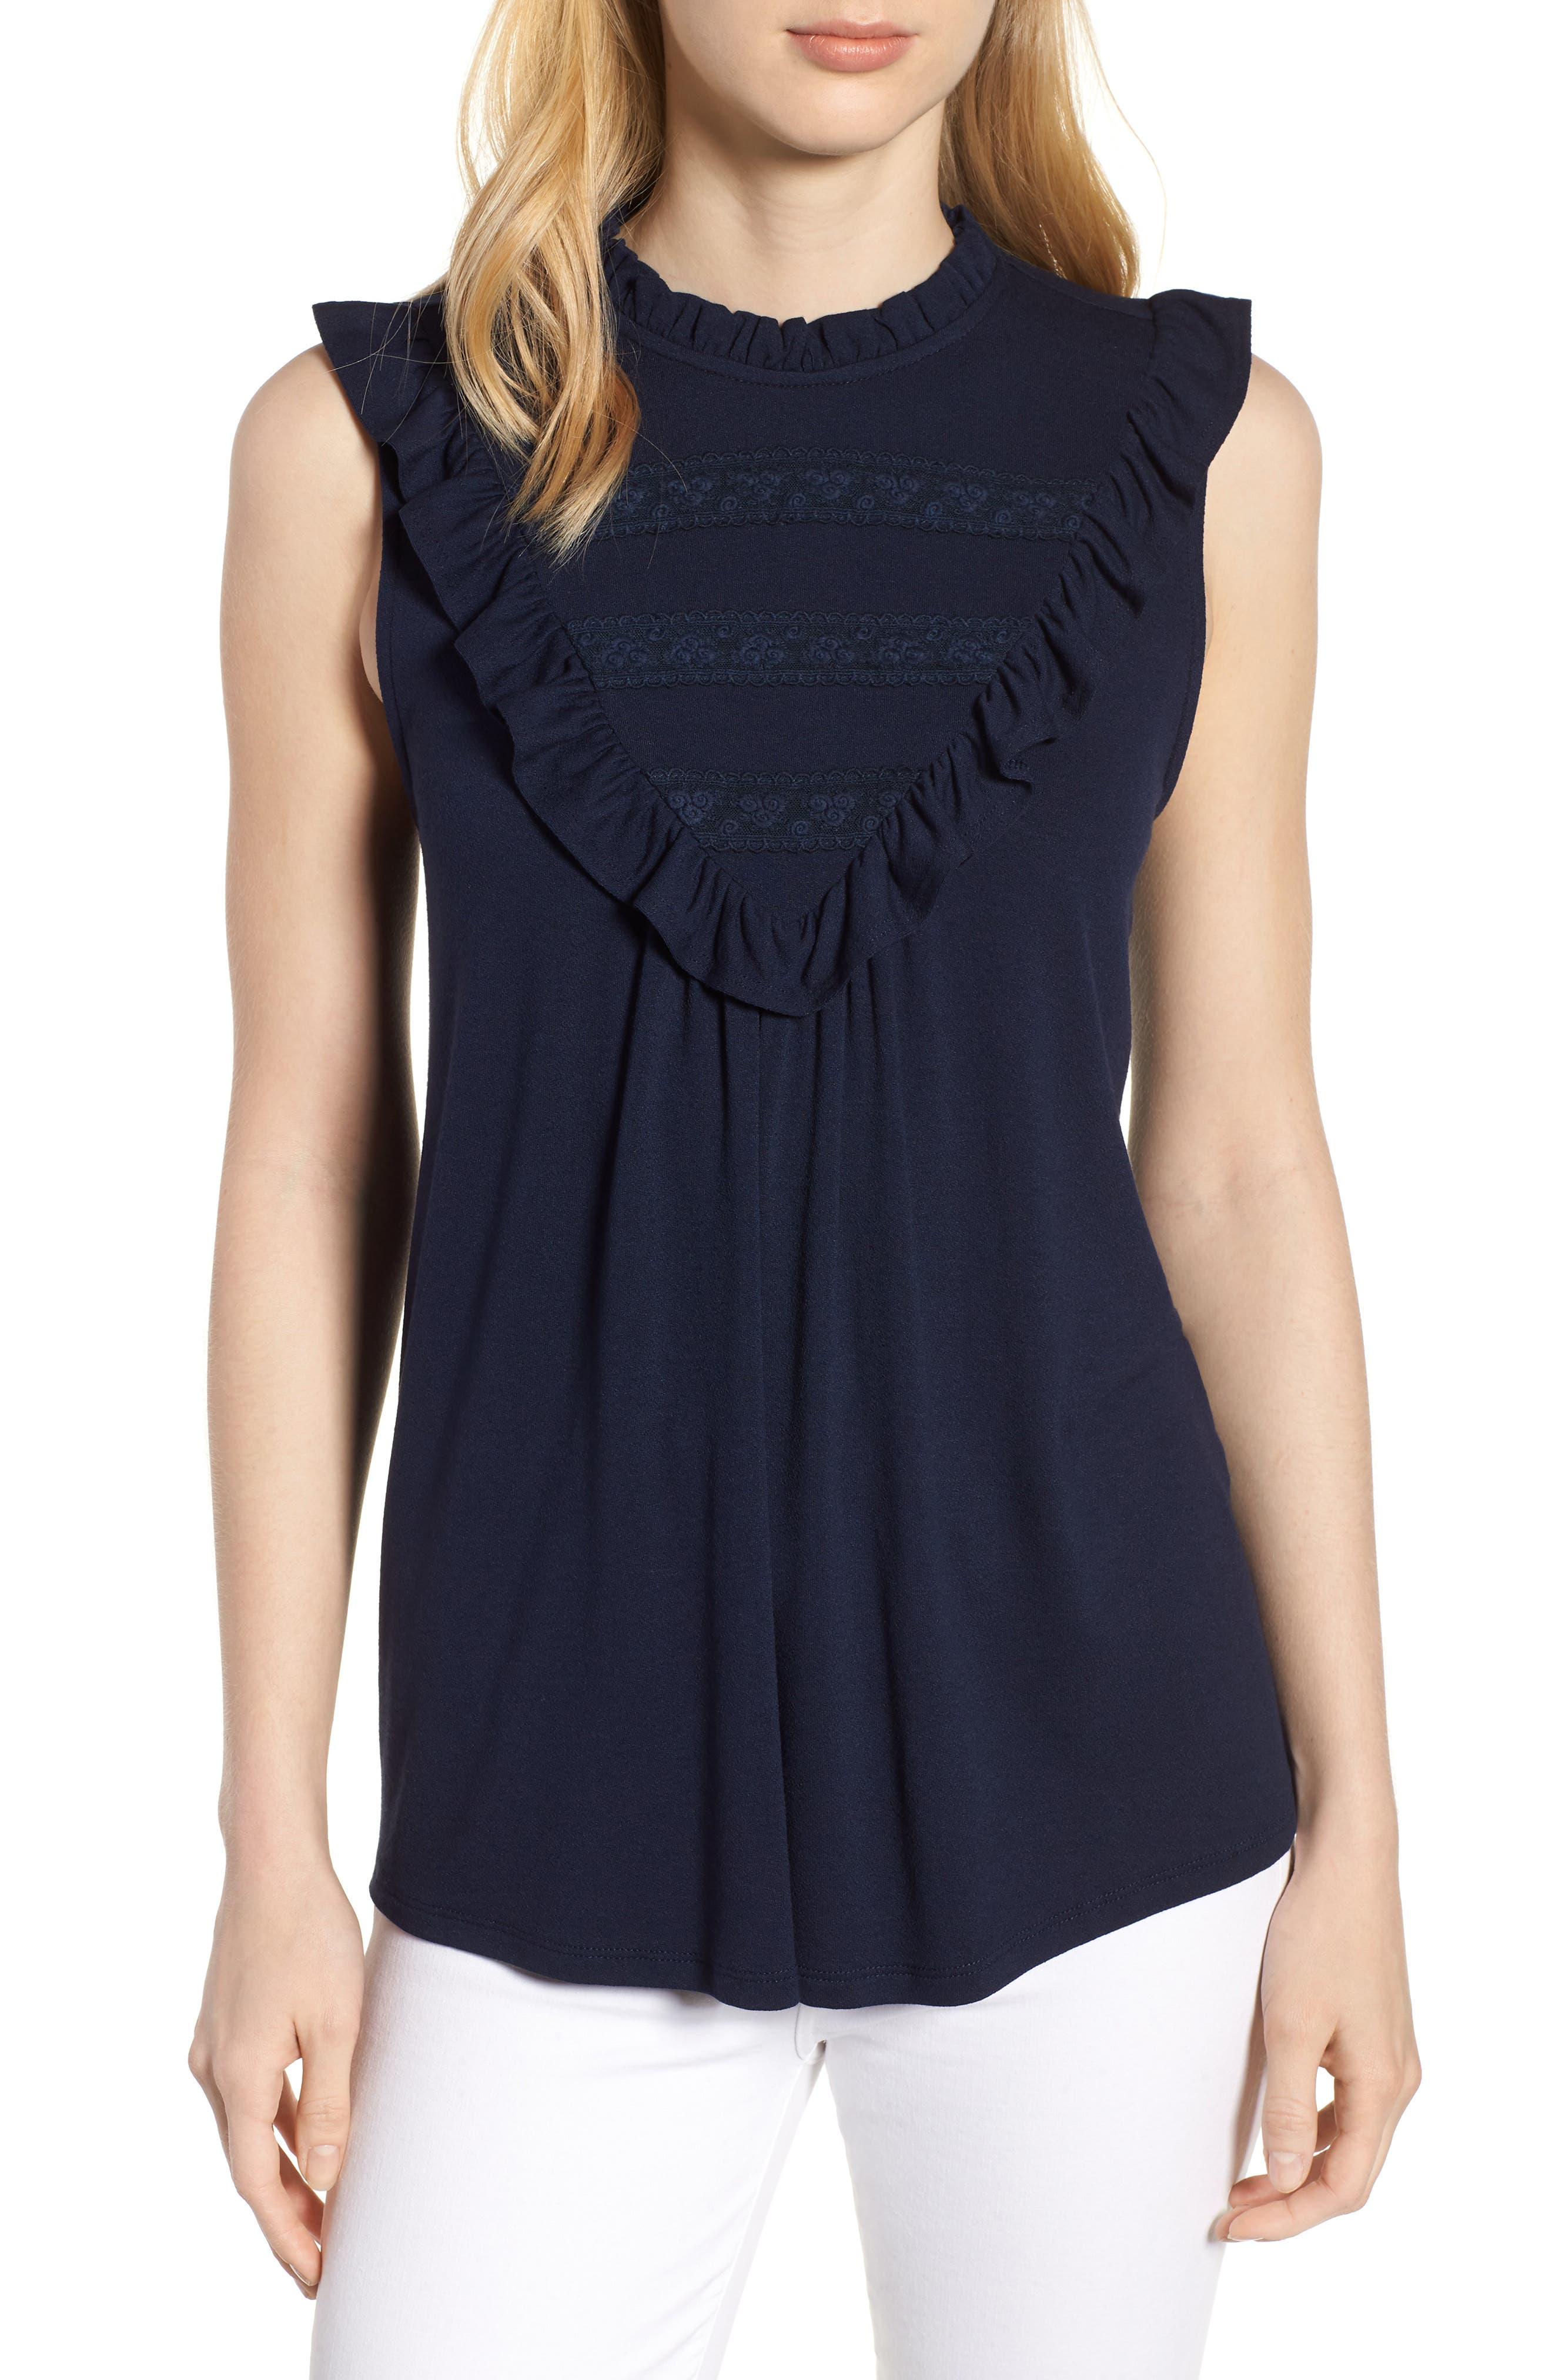 Everleigh Lace Inset Tank Top